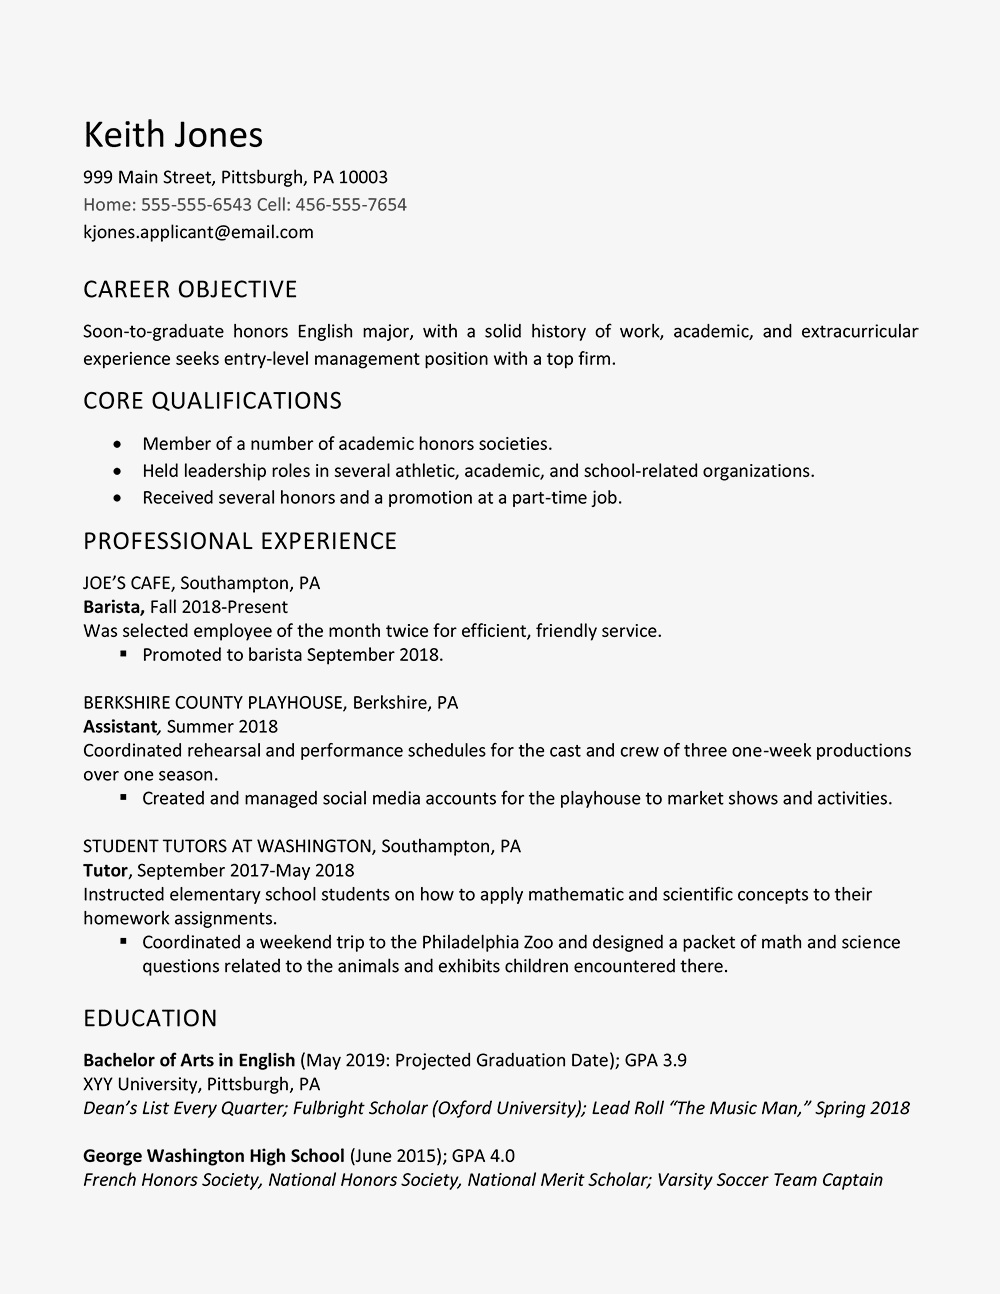 resume after high school - Garaj.cmi-c.org